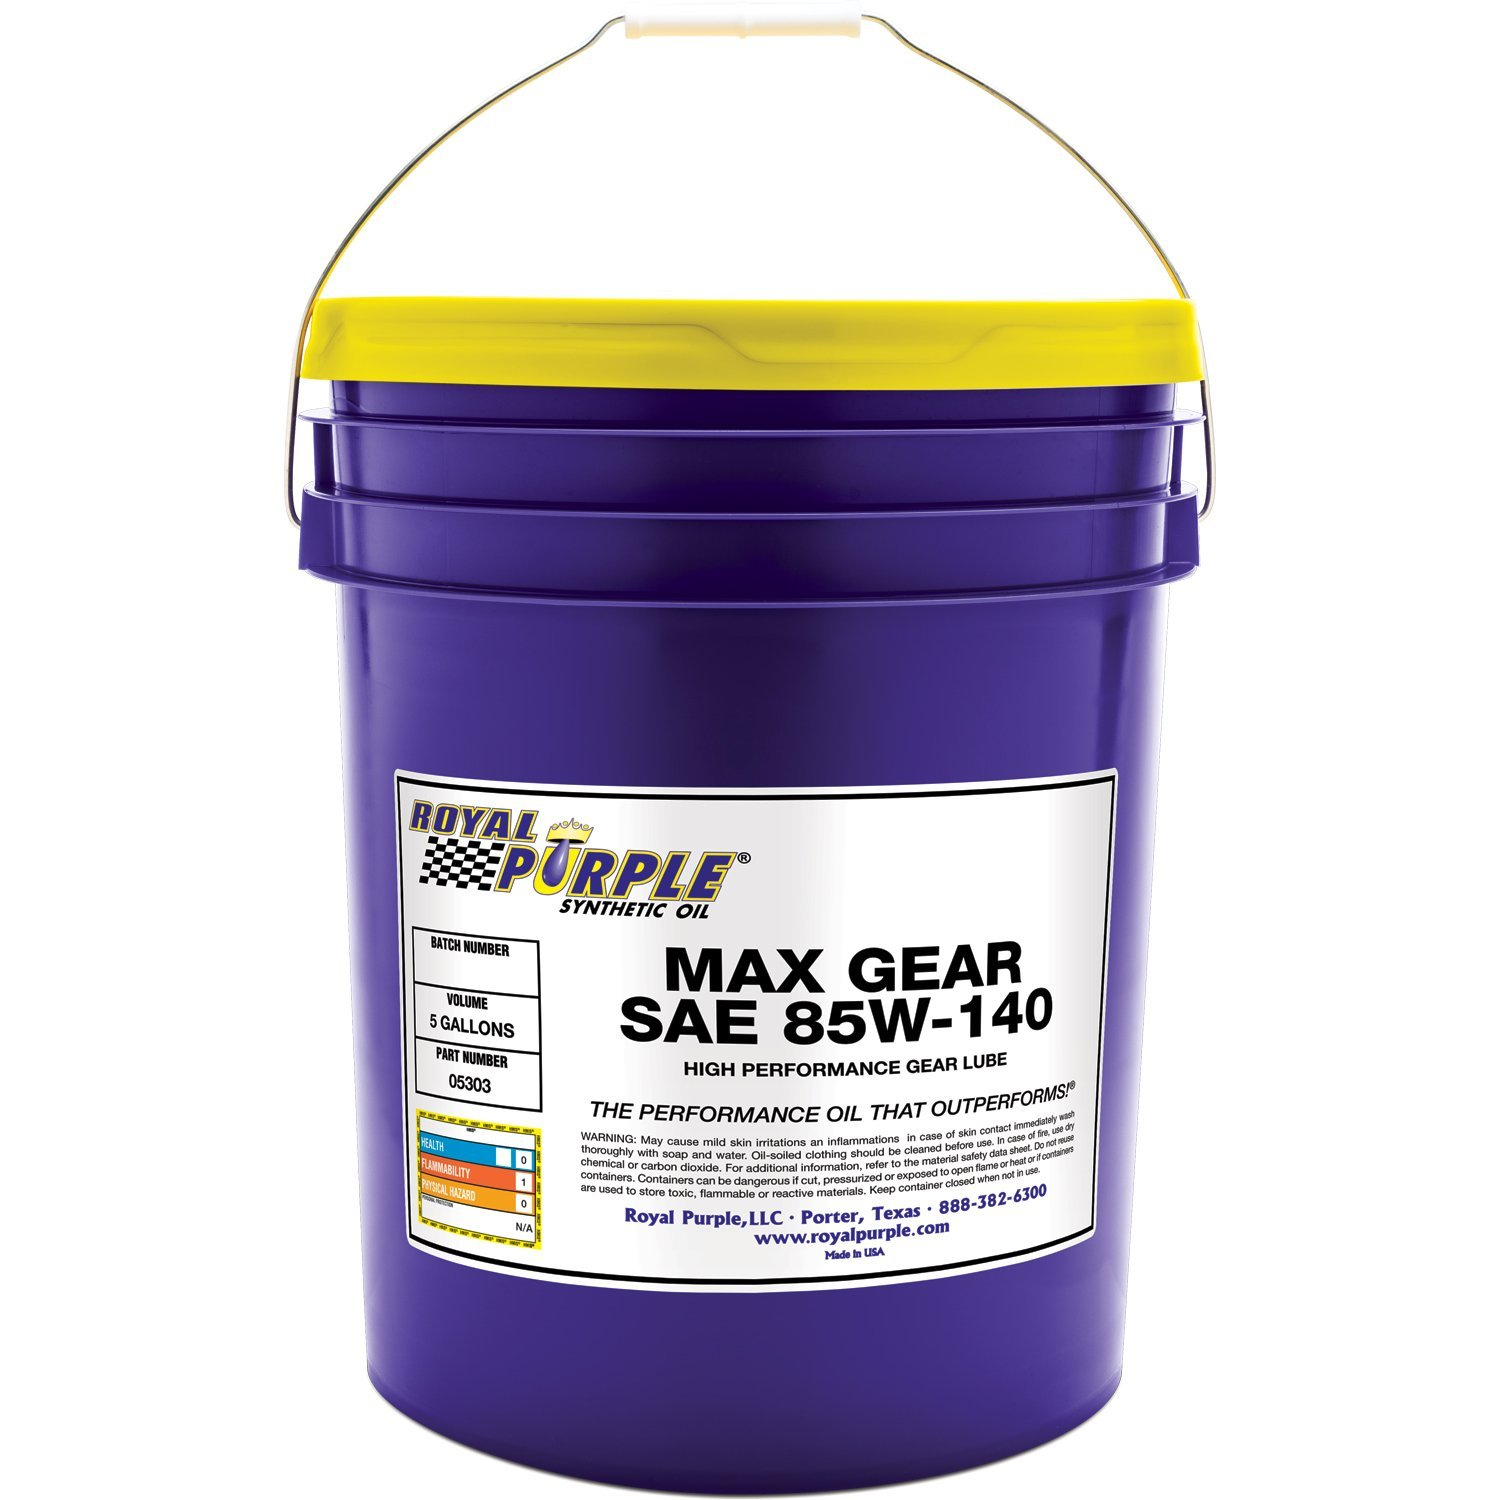 Royal Purple 01303 Max Gear 85W-140 High Performance Synthetic Automotive Gear Oil, 1 Quart Bottle ROY01303